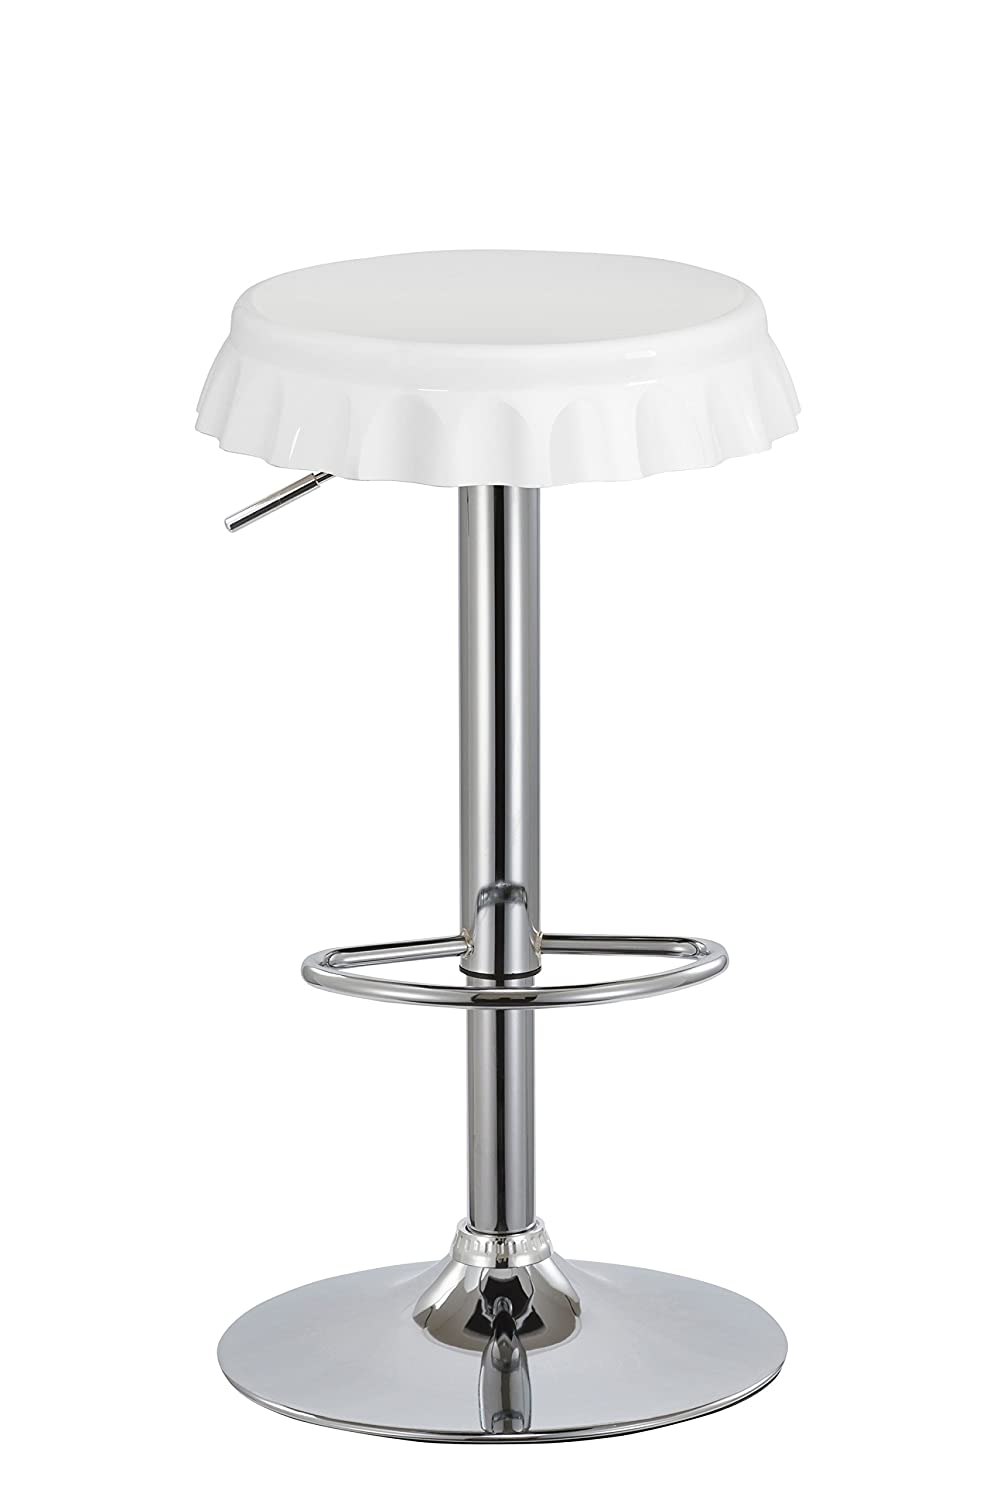 Duhome 2 PCS Contemporary Soda Bottle Cap Style Swivel Bar Stools ABS Seat White